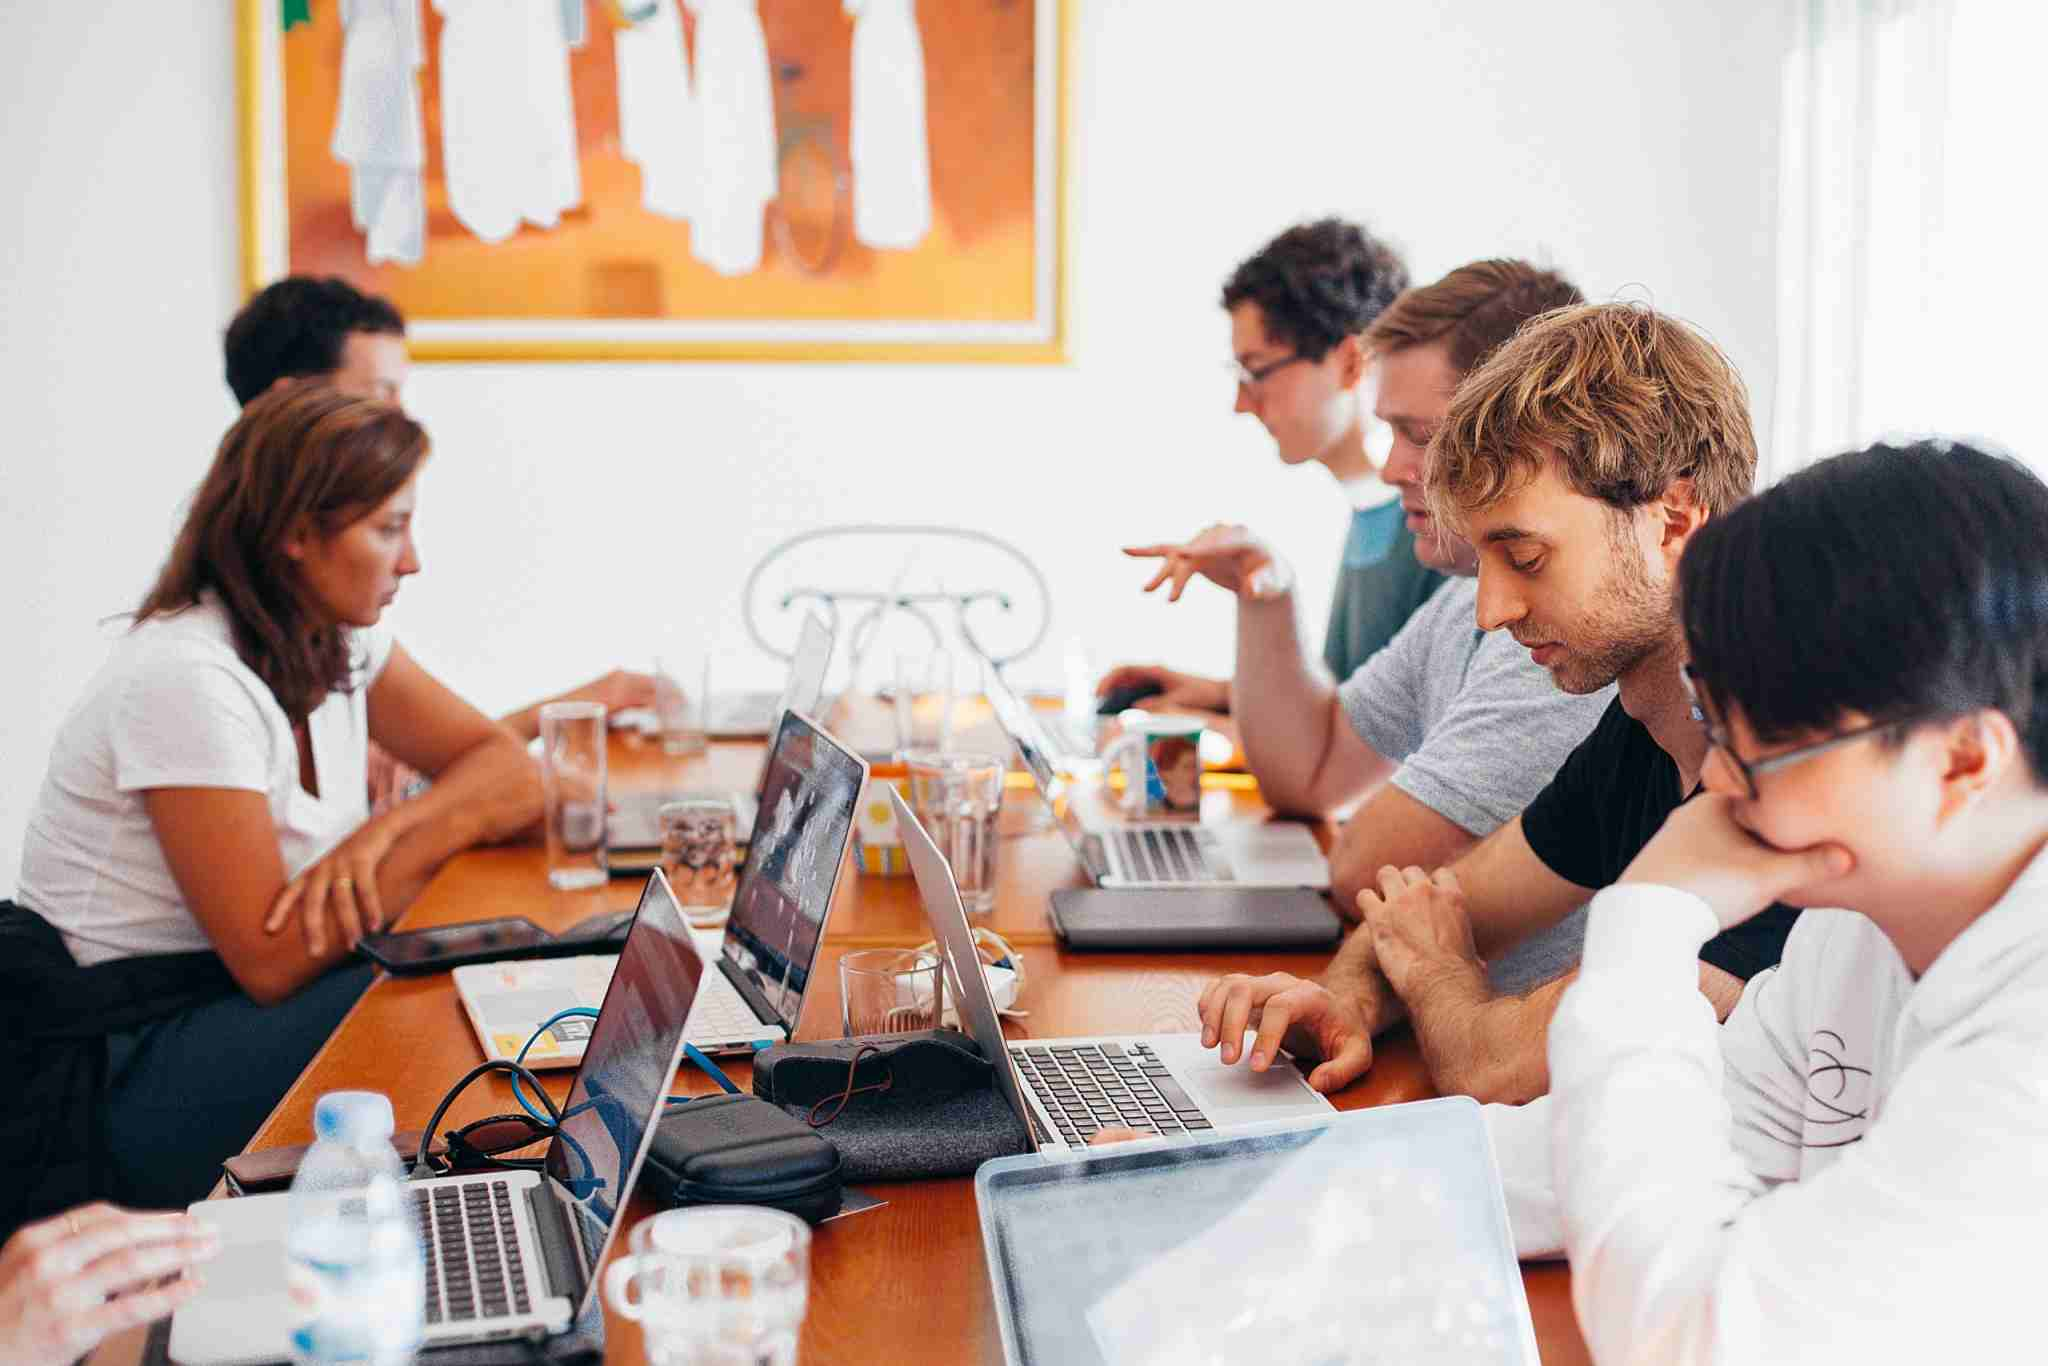 Destress your team while training by using our process management software for free